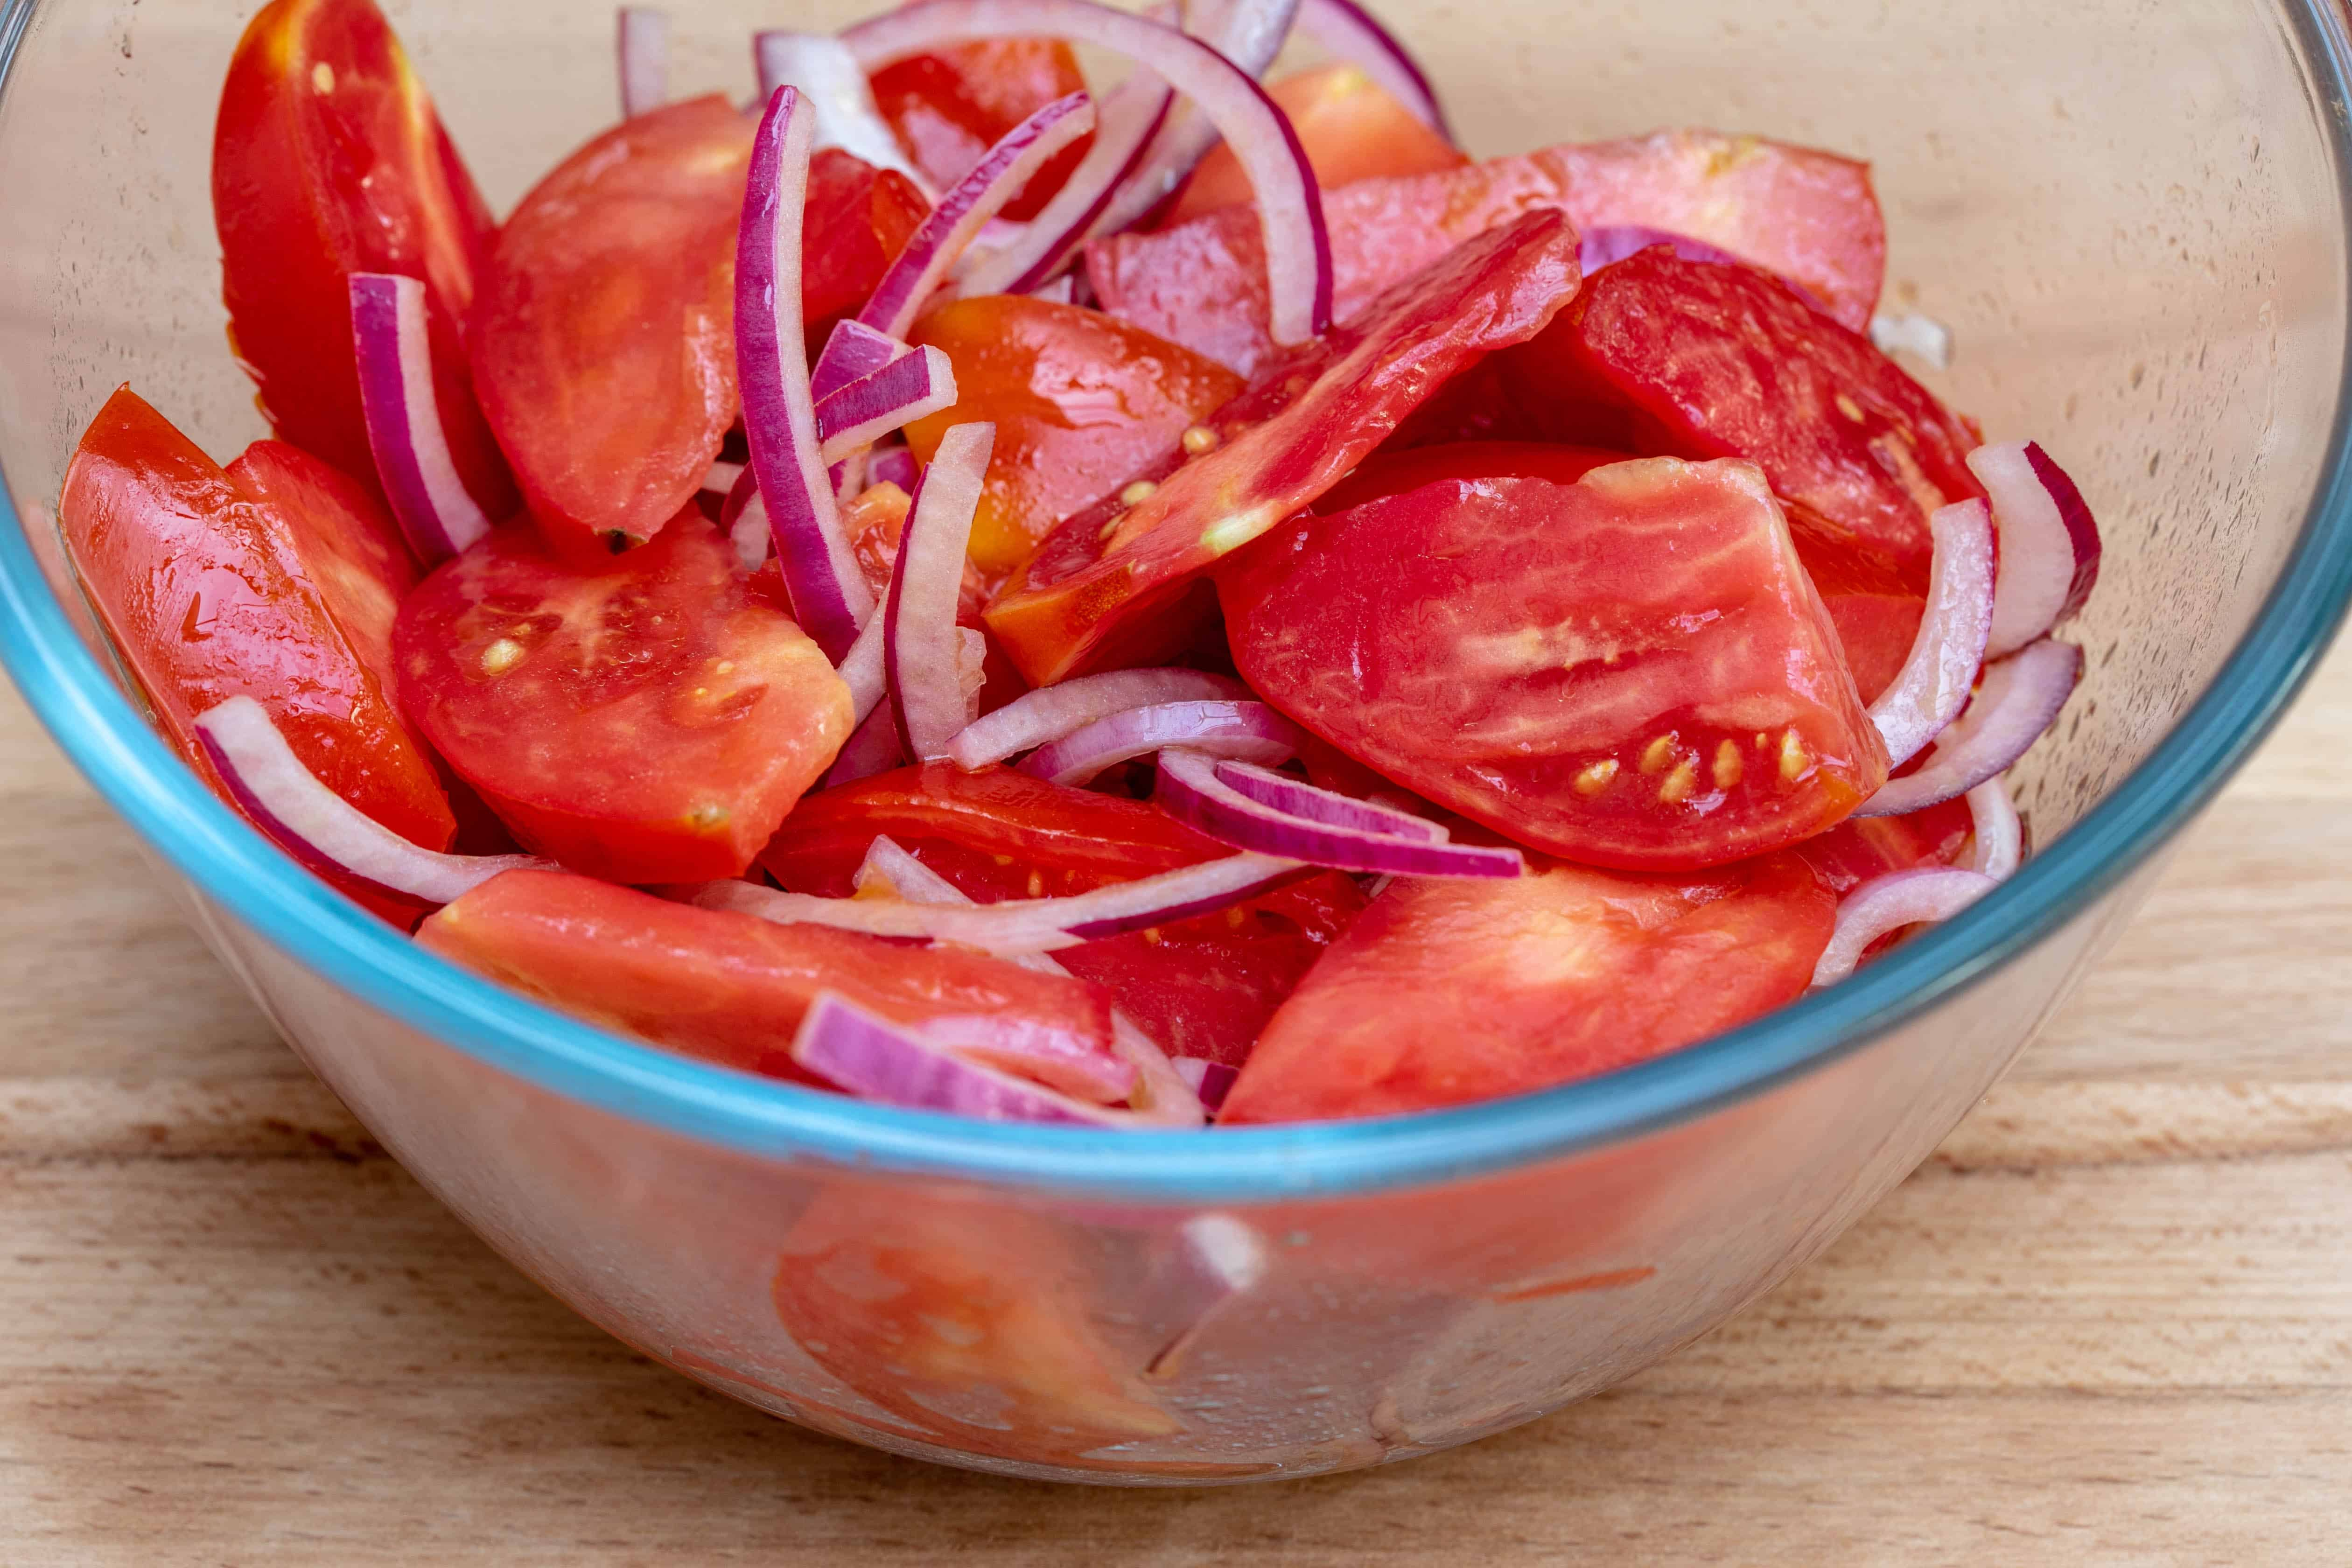 bowl of tomato wedges and red onion slices